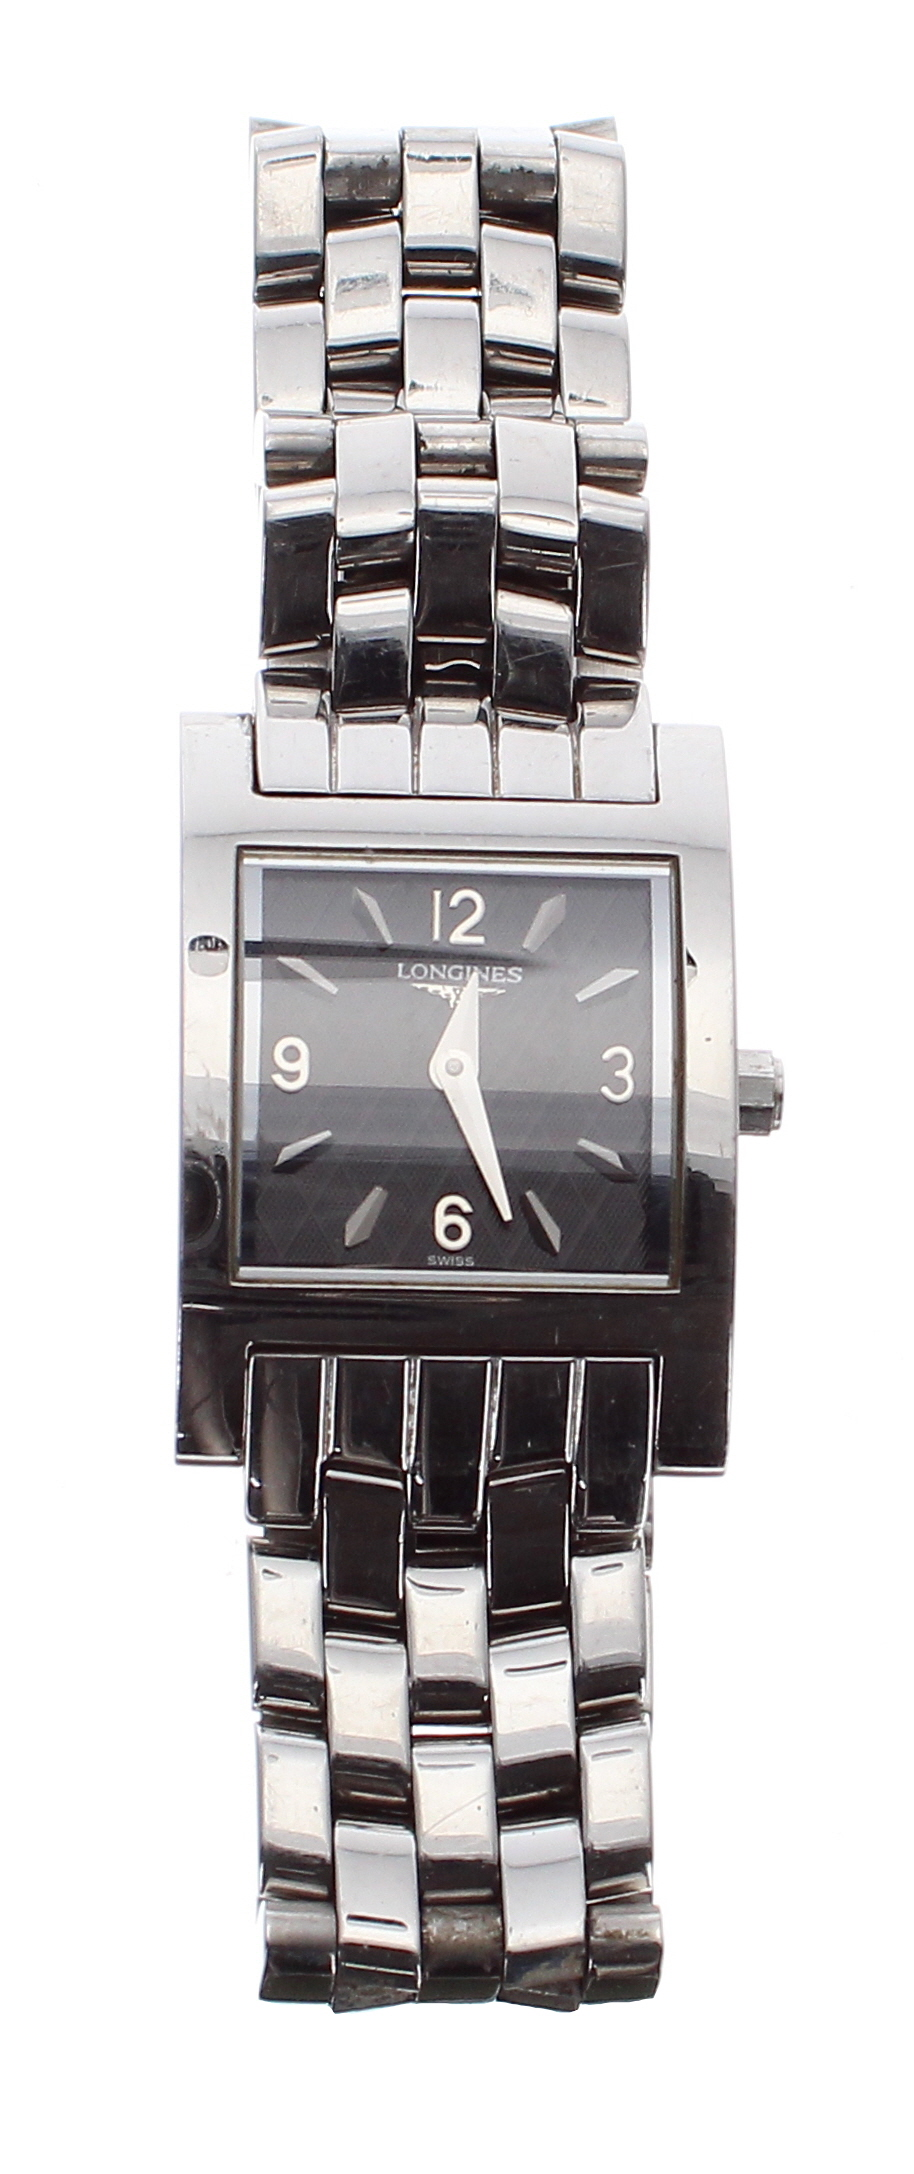 Lot 43 - Longines Dolce Vita curved rectangular stainless steel lady's bracelet watch, ref. L5 166 4,